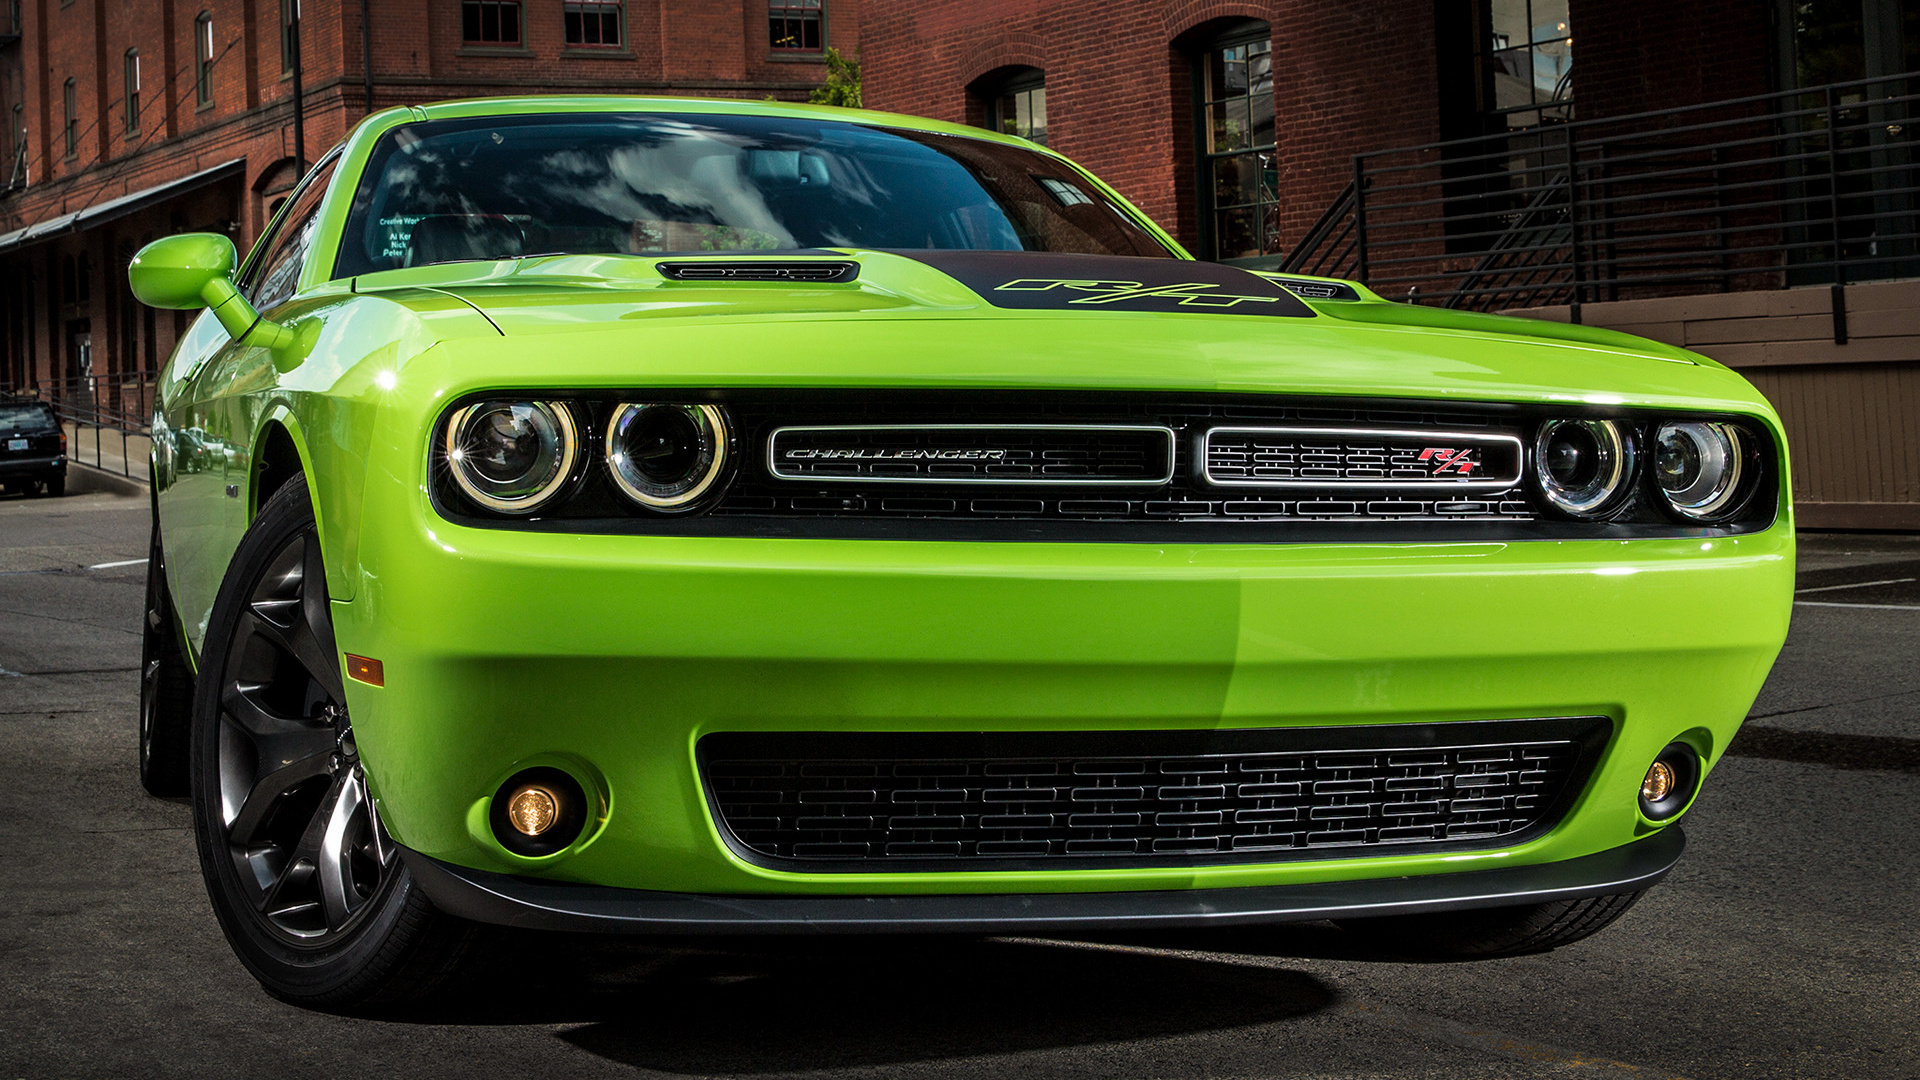 Dodge Challenger R/T Plus (2015) Wallpapers and HD Images - Car Pixel